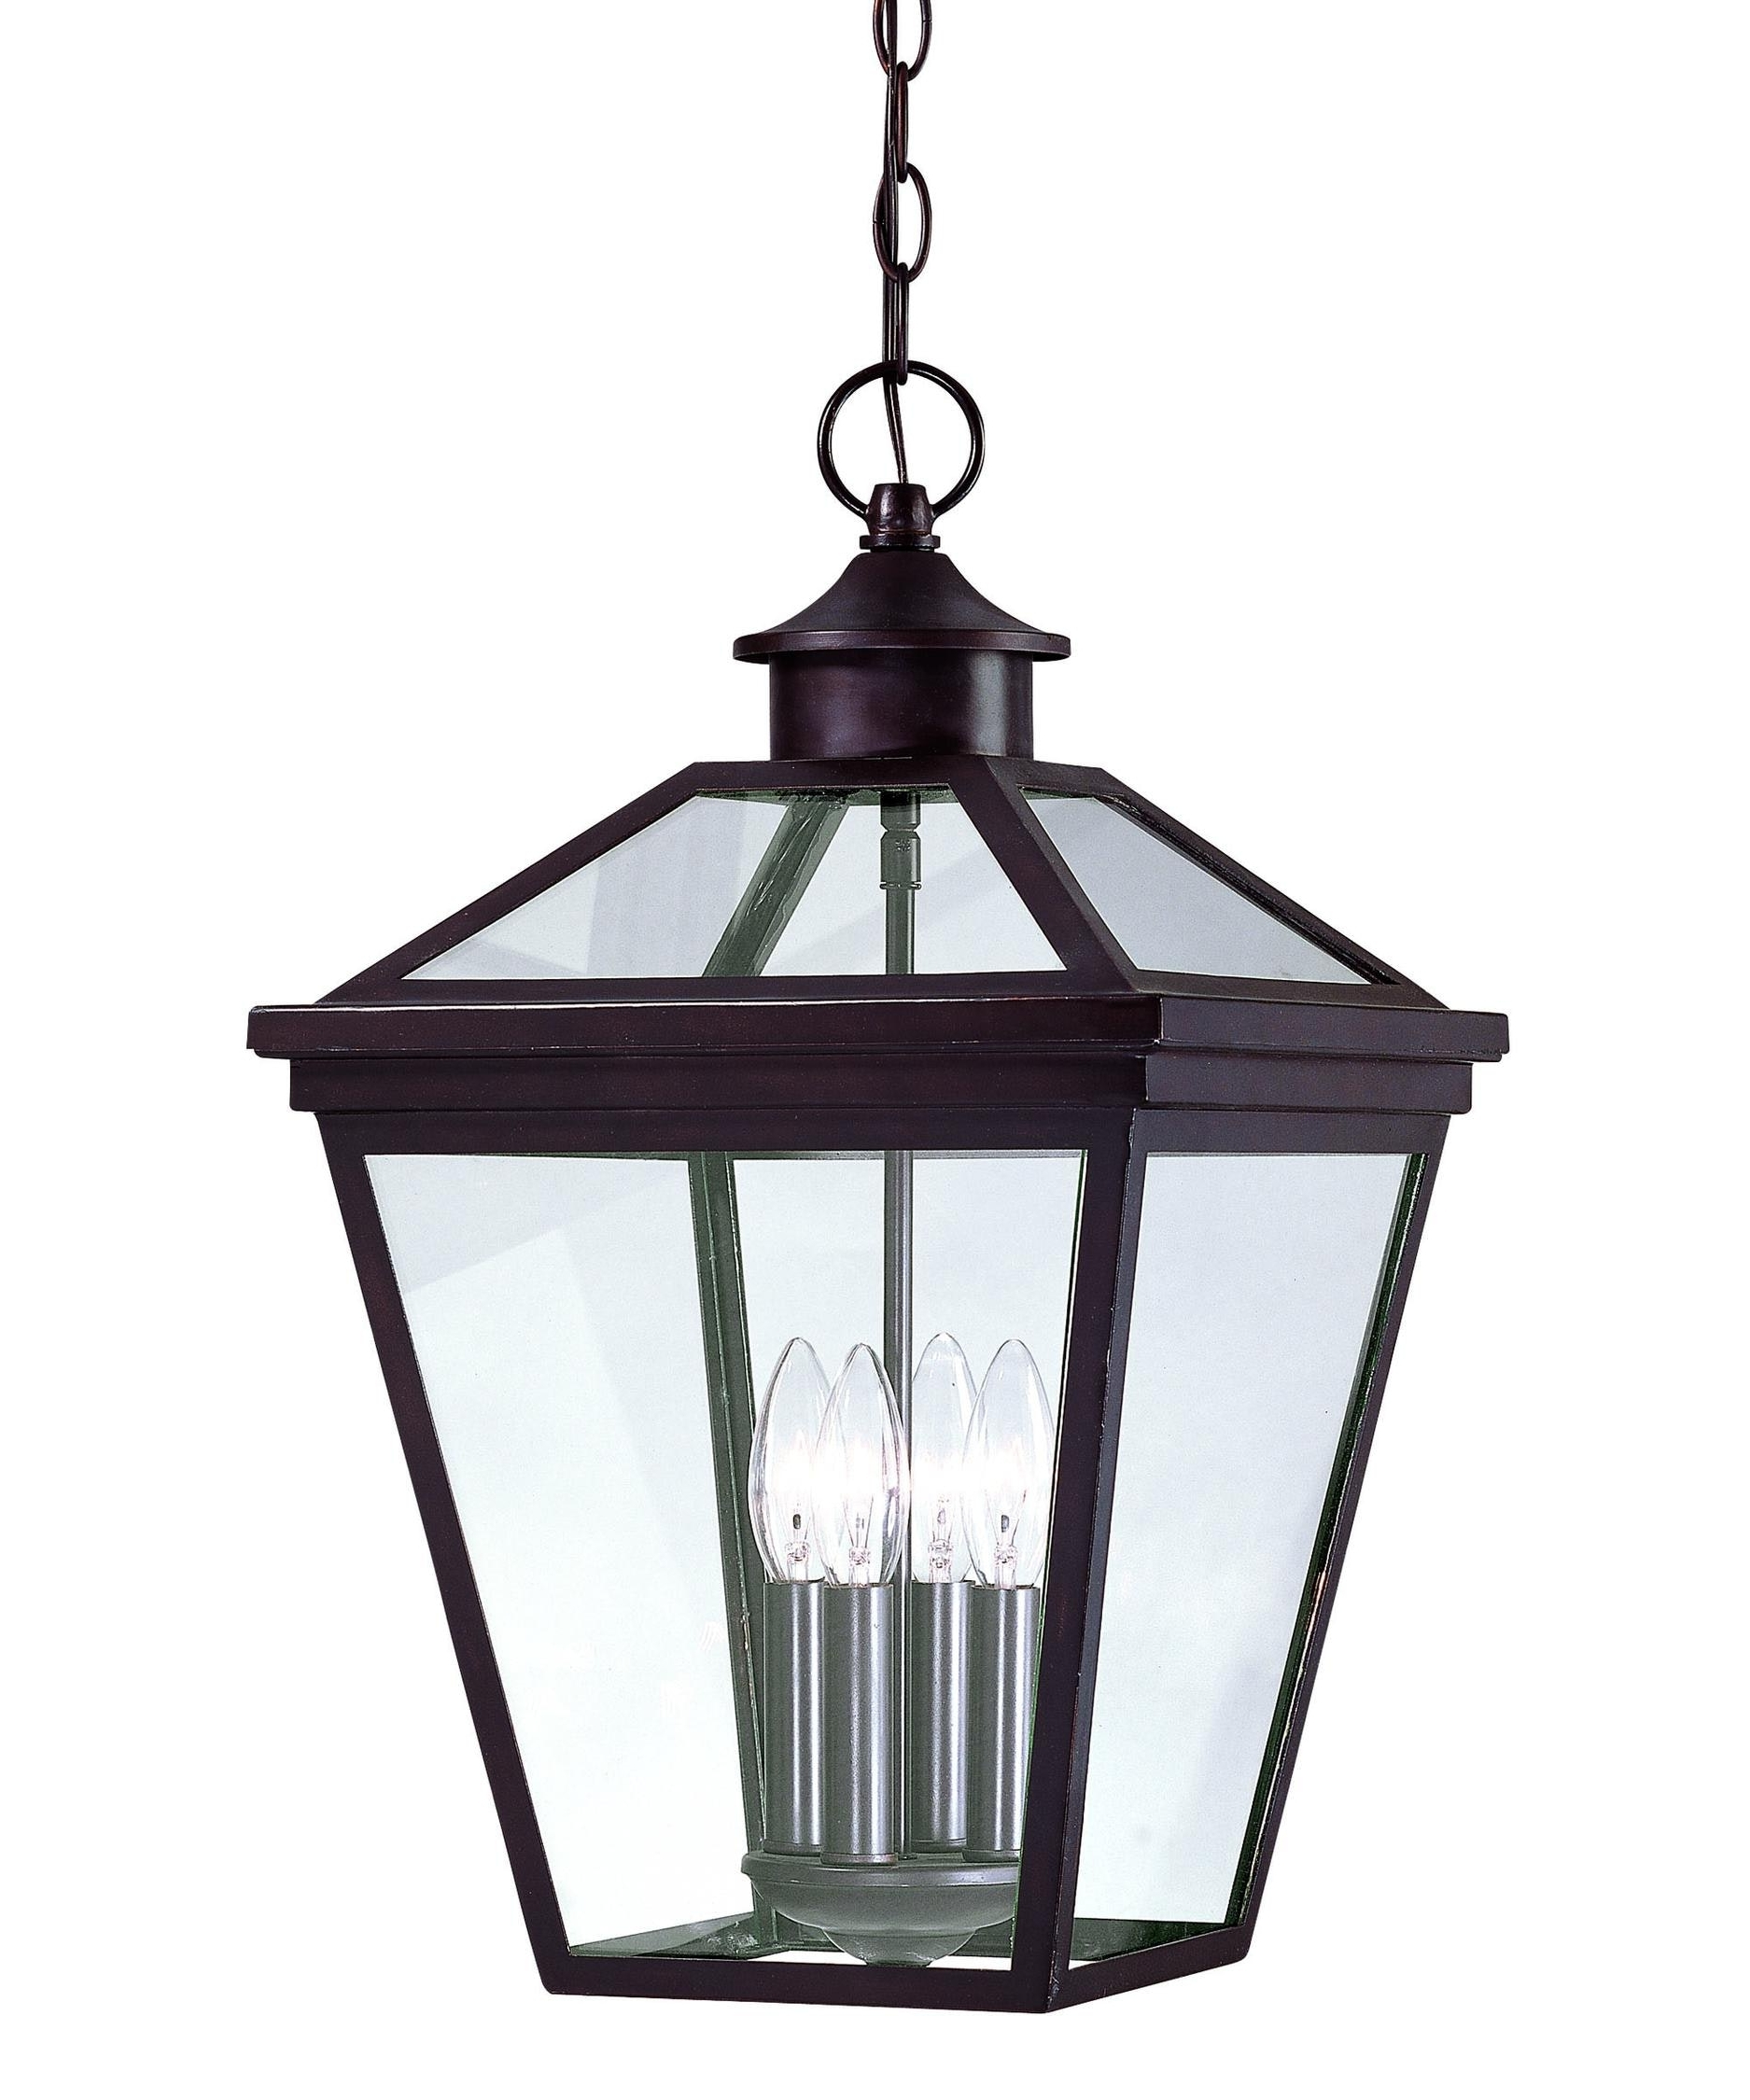 Fashionable Designers Fountain Orb Ellington Ds Hanging Lanterns Oil Photo With With Outdoor Hanging Lanterns At Lowes (View 3 of 20)